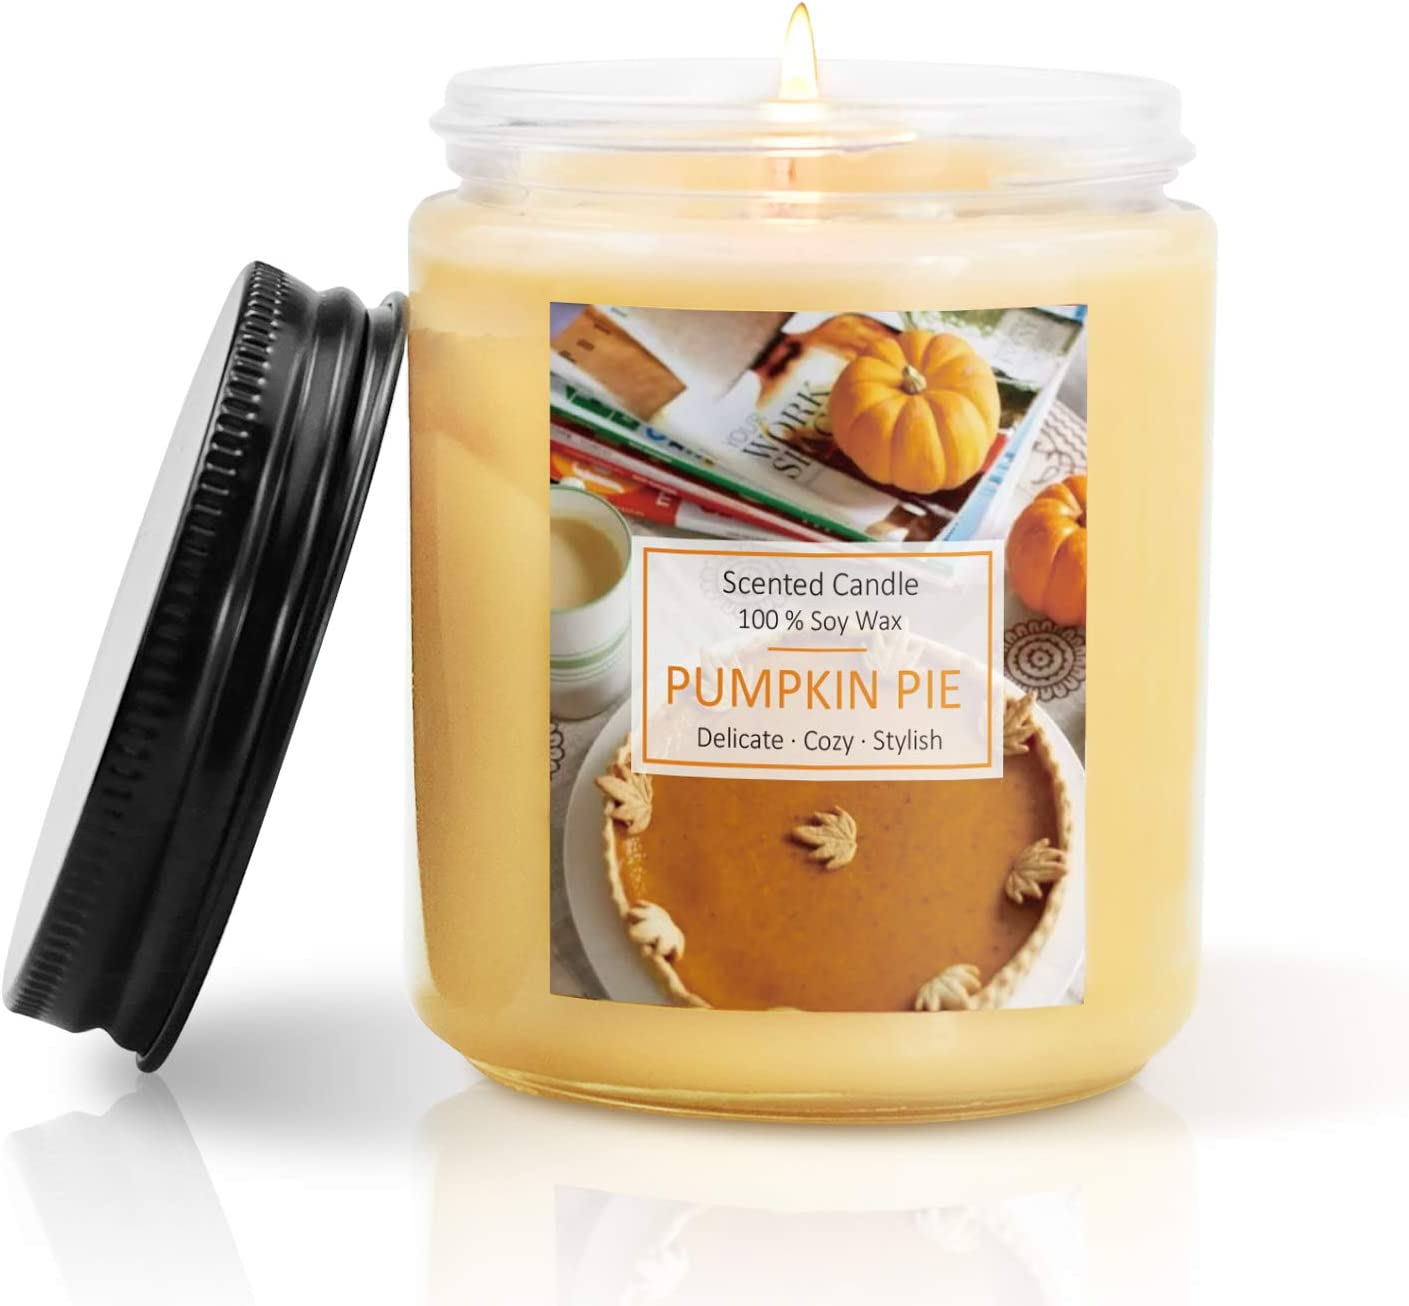 SCENTORINI Scented Candles, Soy Wax Candle, Aromatherapy Handmade Candles, 200 g Pumpkin Pie Candle for Halloween, Christmas